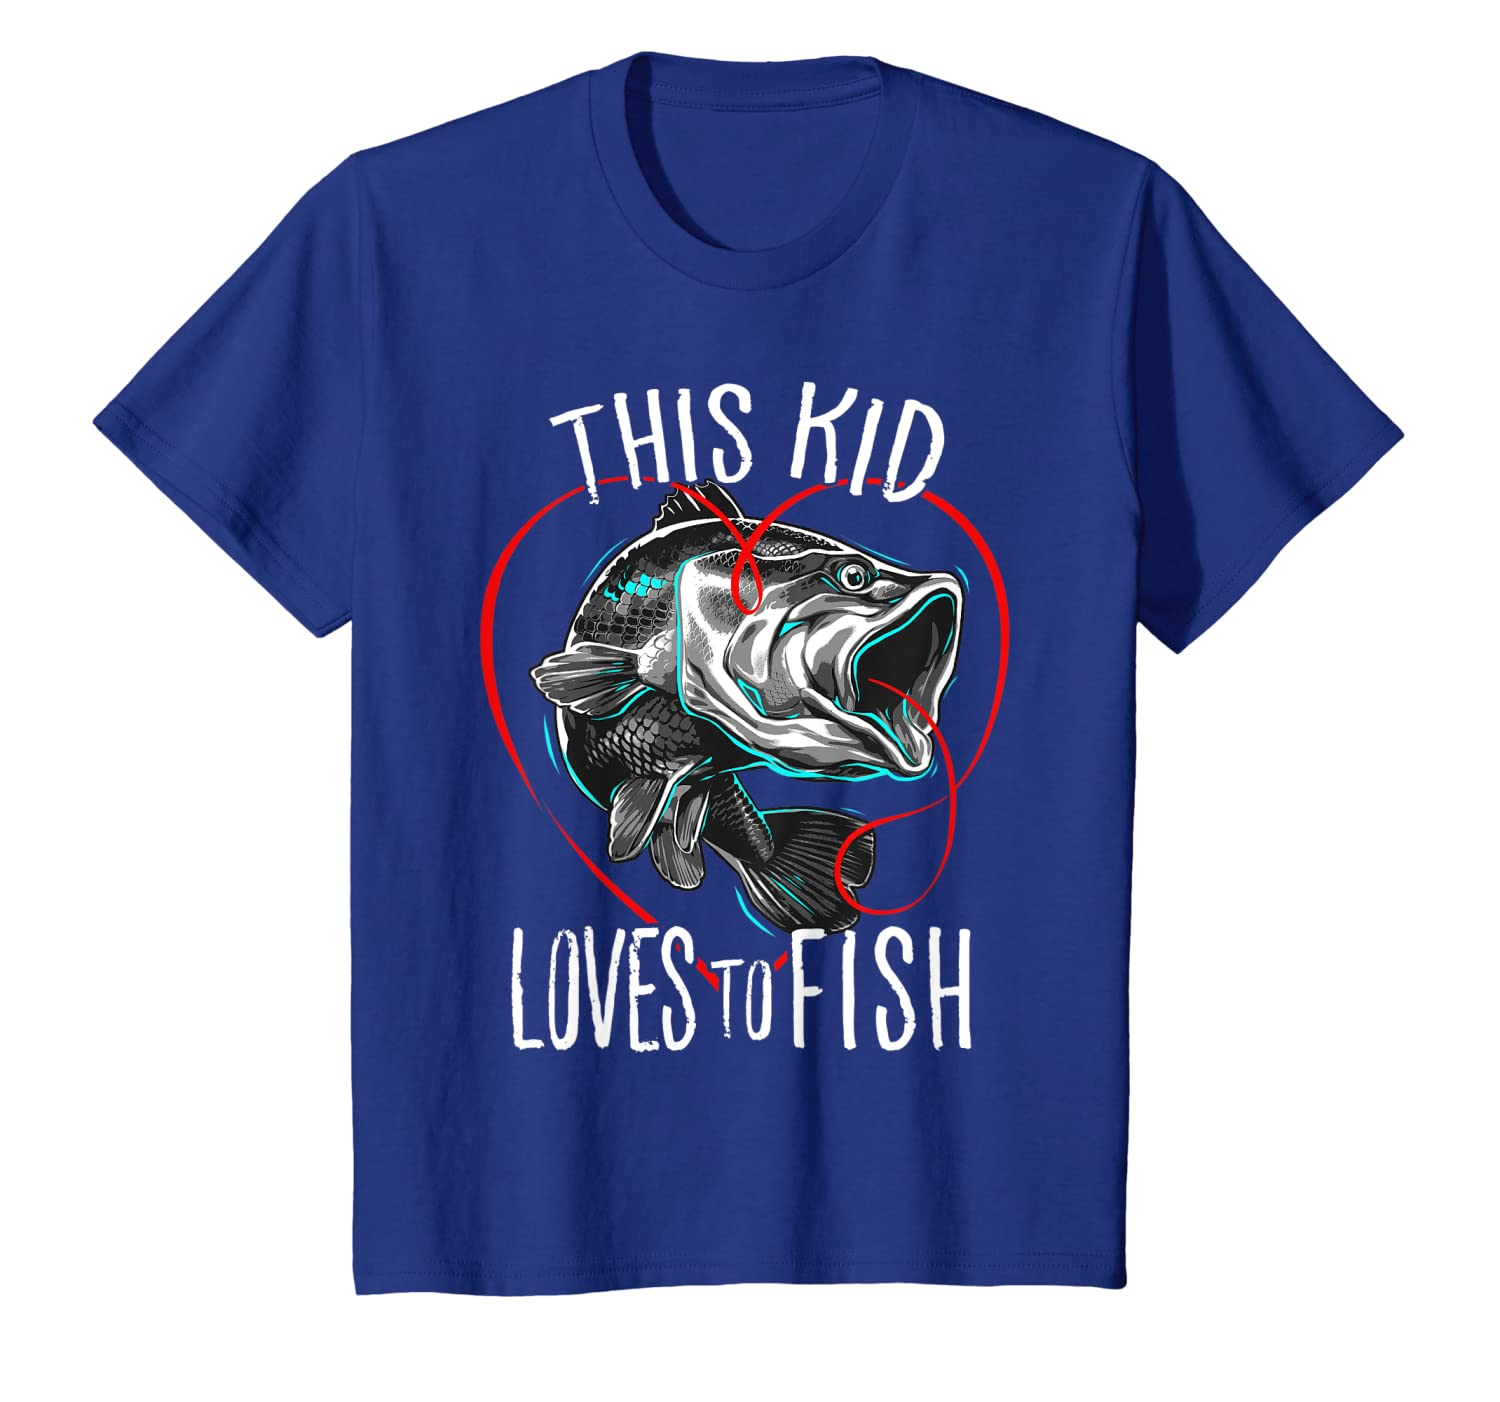 Kids Fishing Tshirts  This Kid Loves to Fish T Shirt Unisex Tshirt